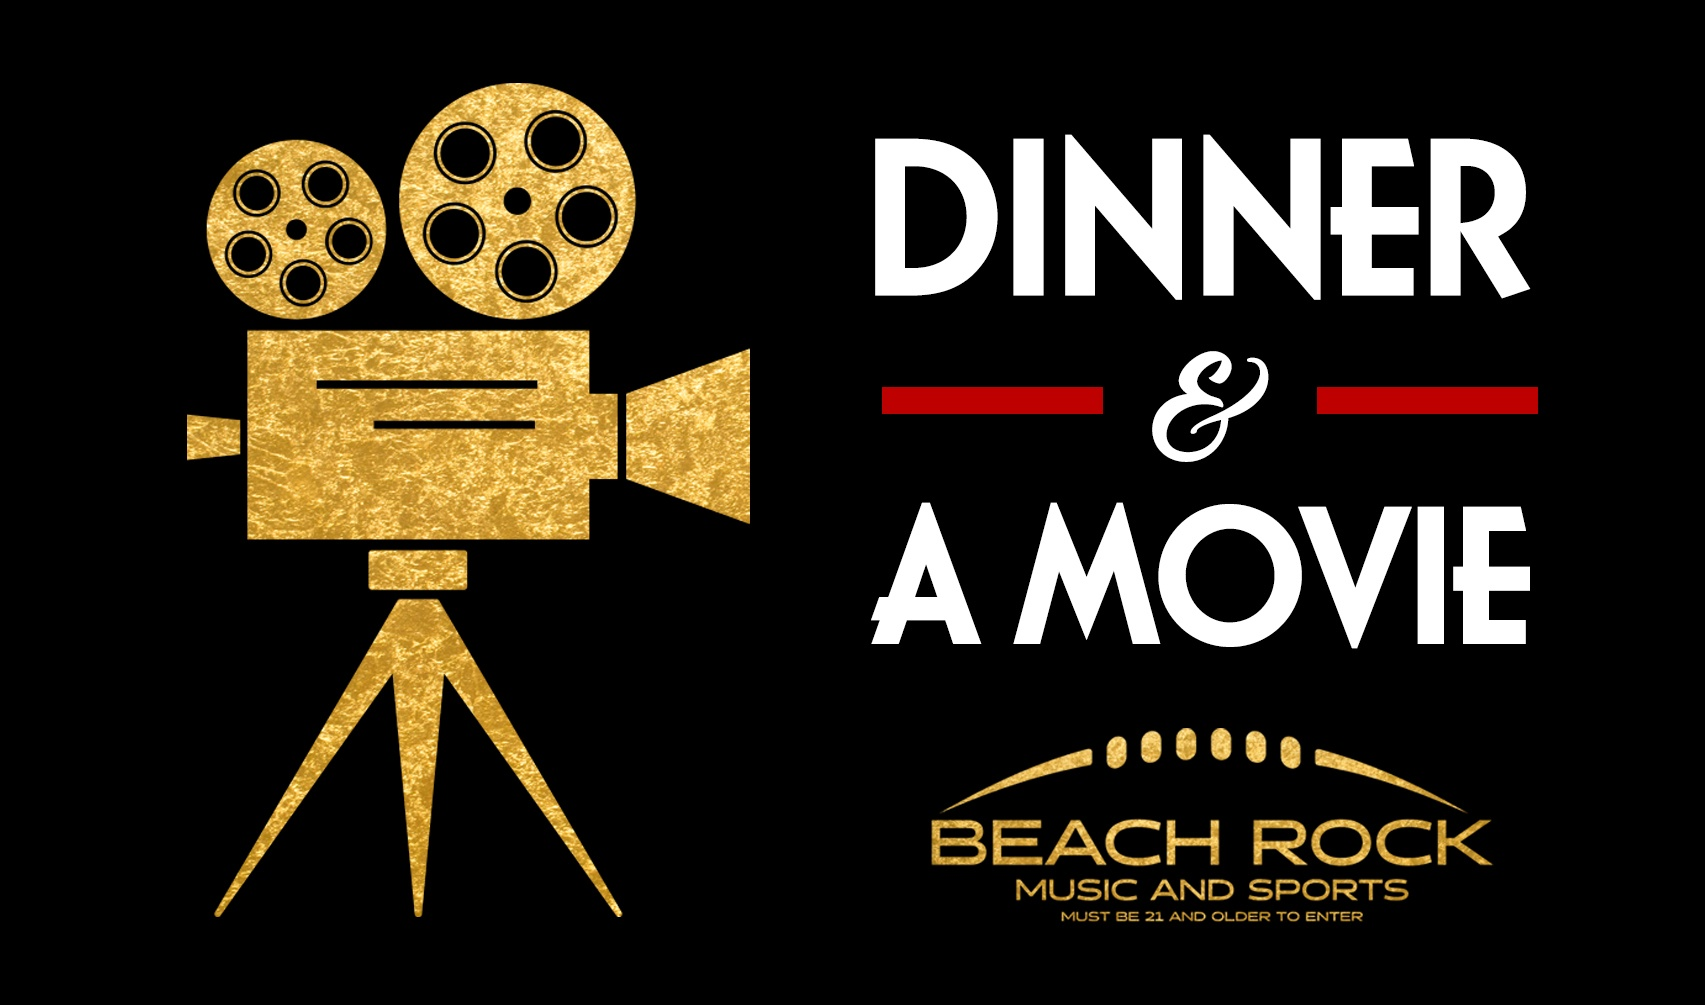 DINNER & A MOVIE in Beach Rock Music & Sports Lounge